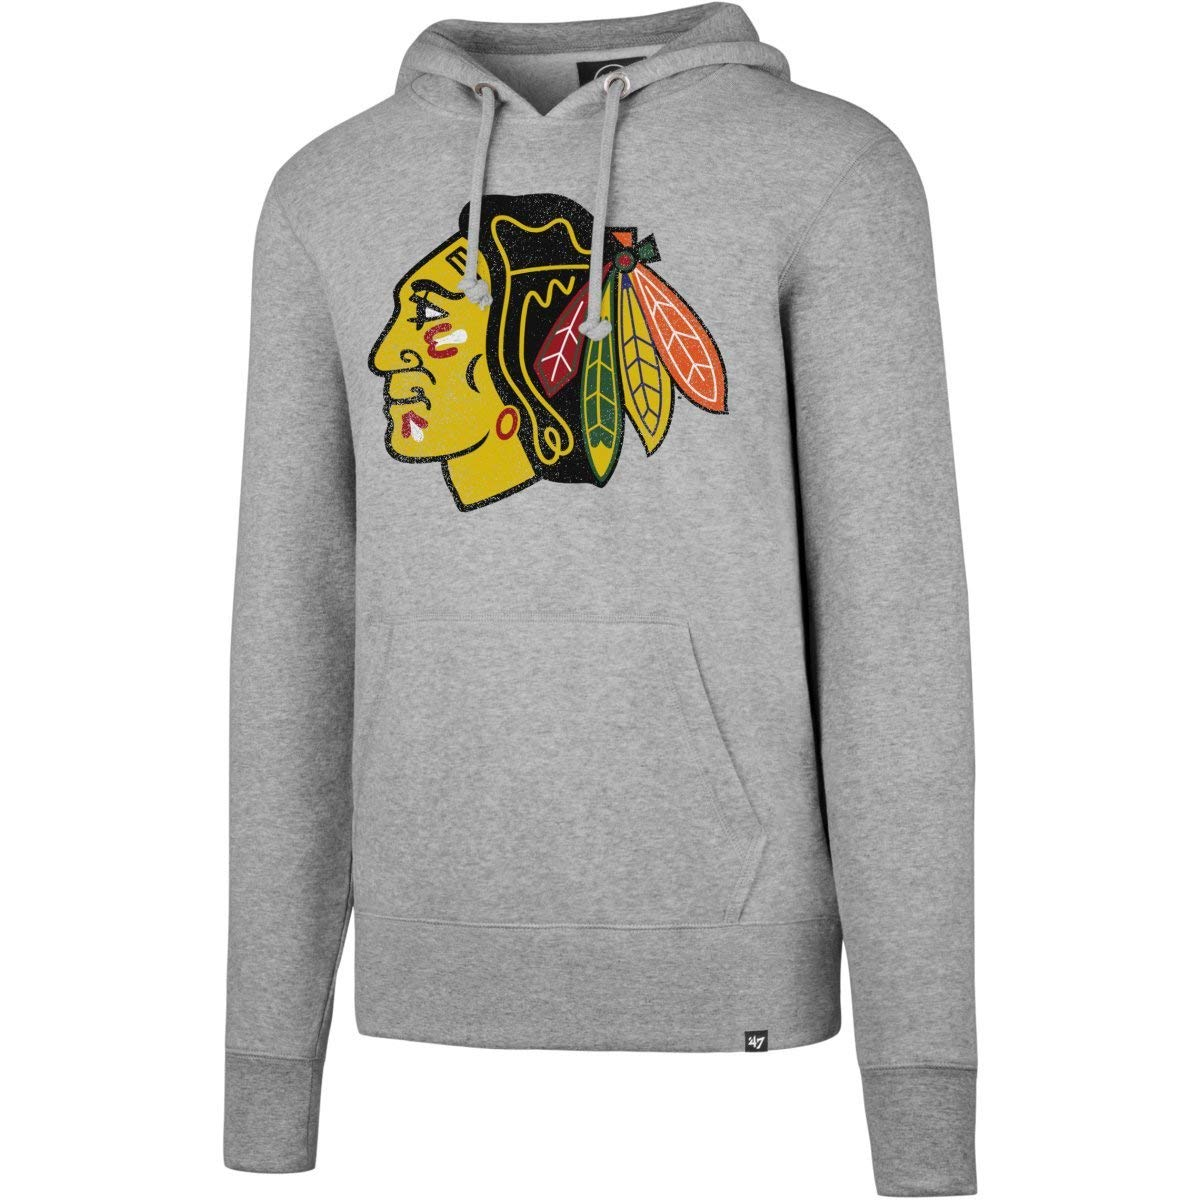 '47 Knockaround Hoodie NHL Sweatshirt, taille:M;nhl teams:Chicago Blackhawks '47